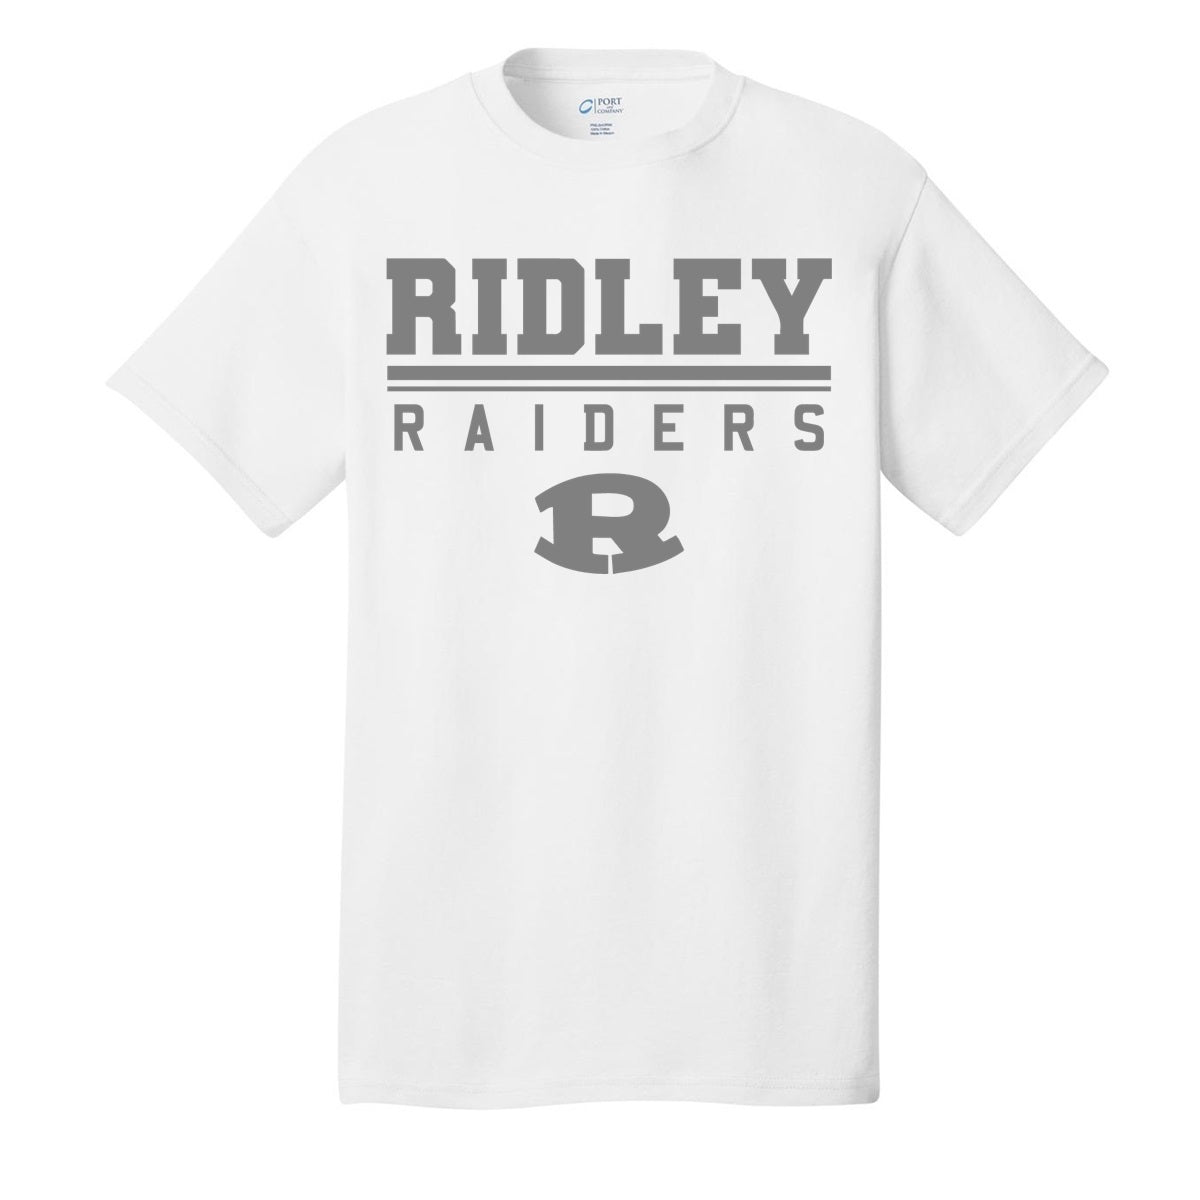 Ridley Raiders White & Grey T-Shirt